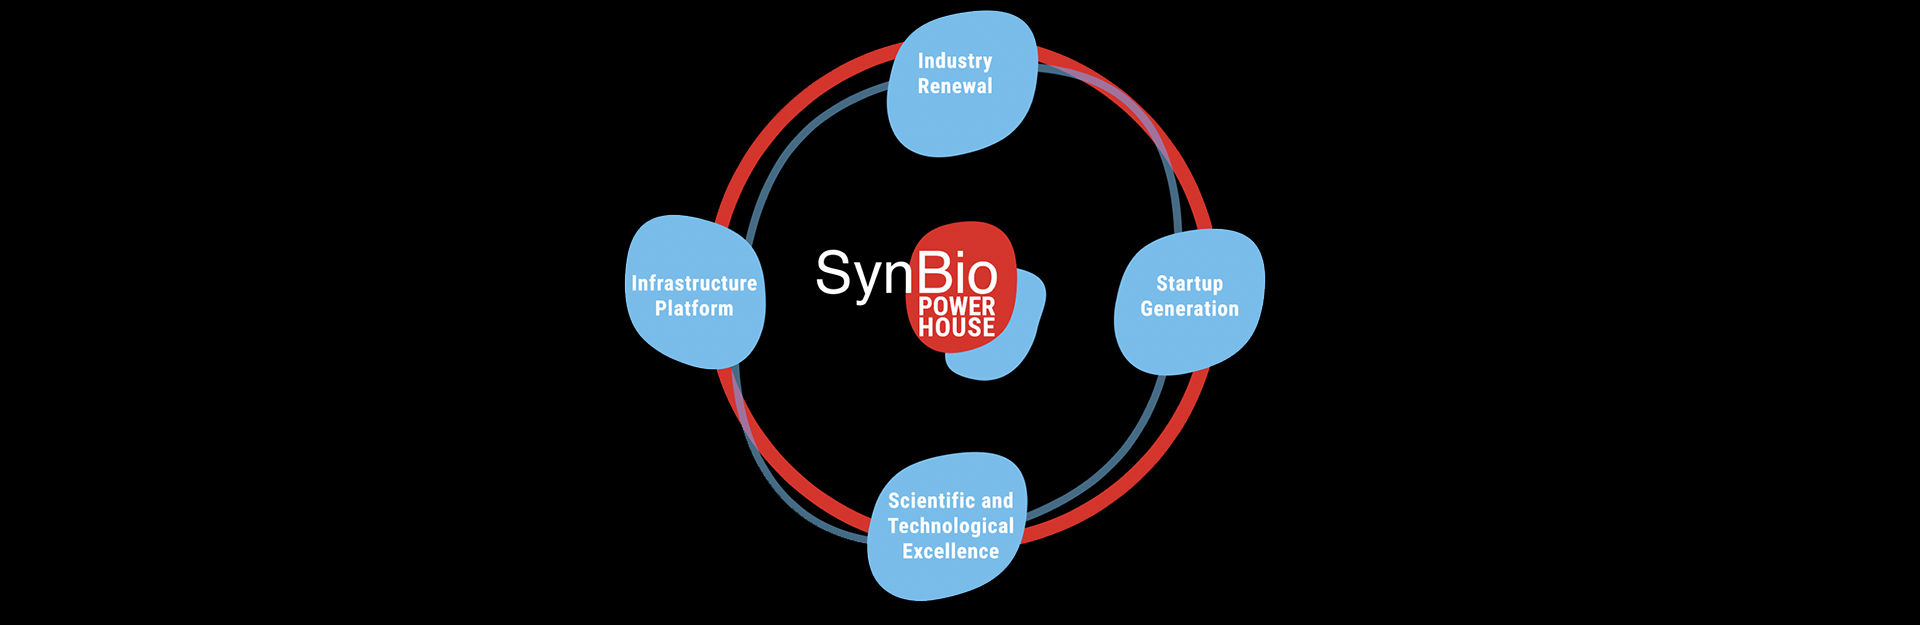 Synbio Powerhouse is the new synthetic biology accelerator in Espoo Innovation Garden